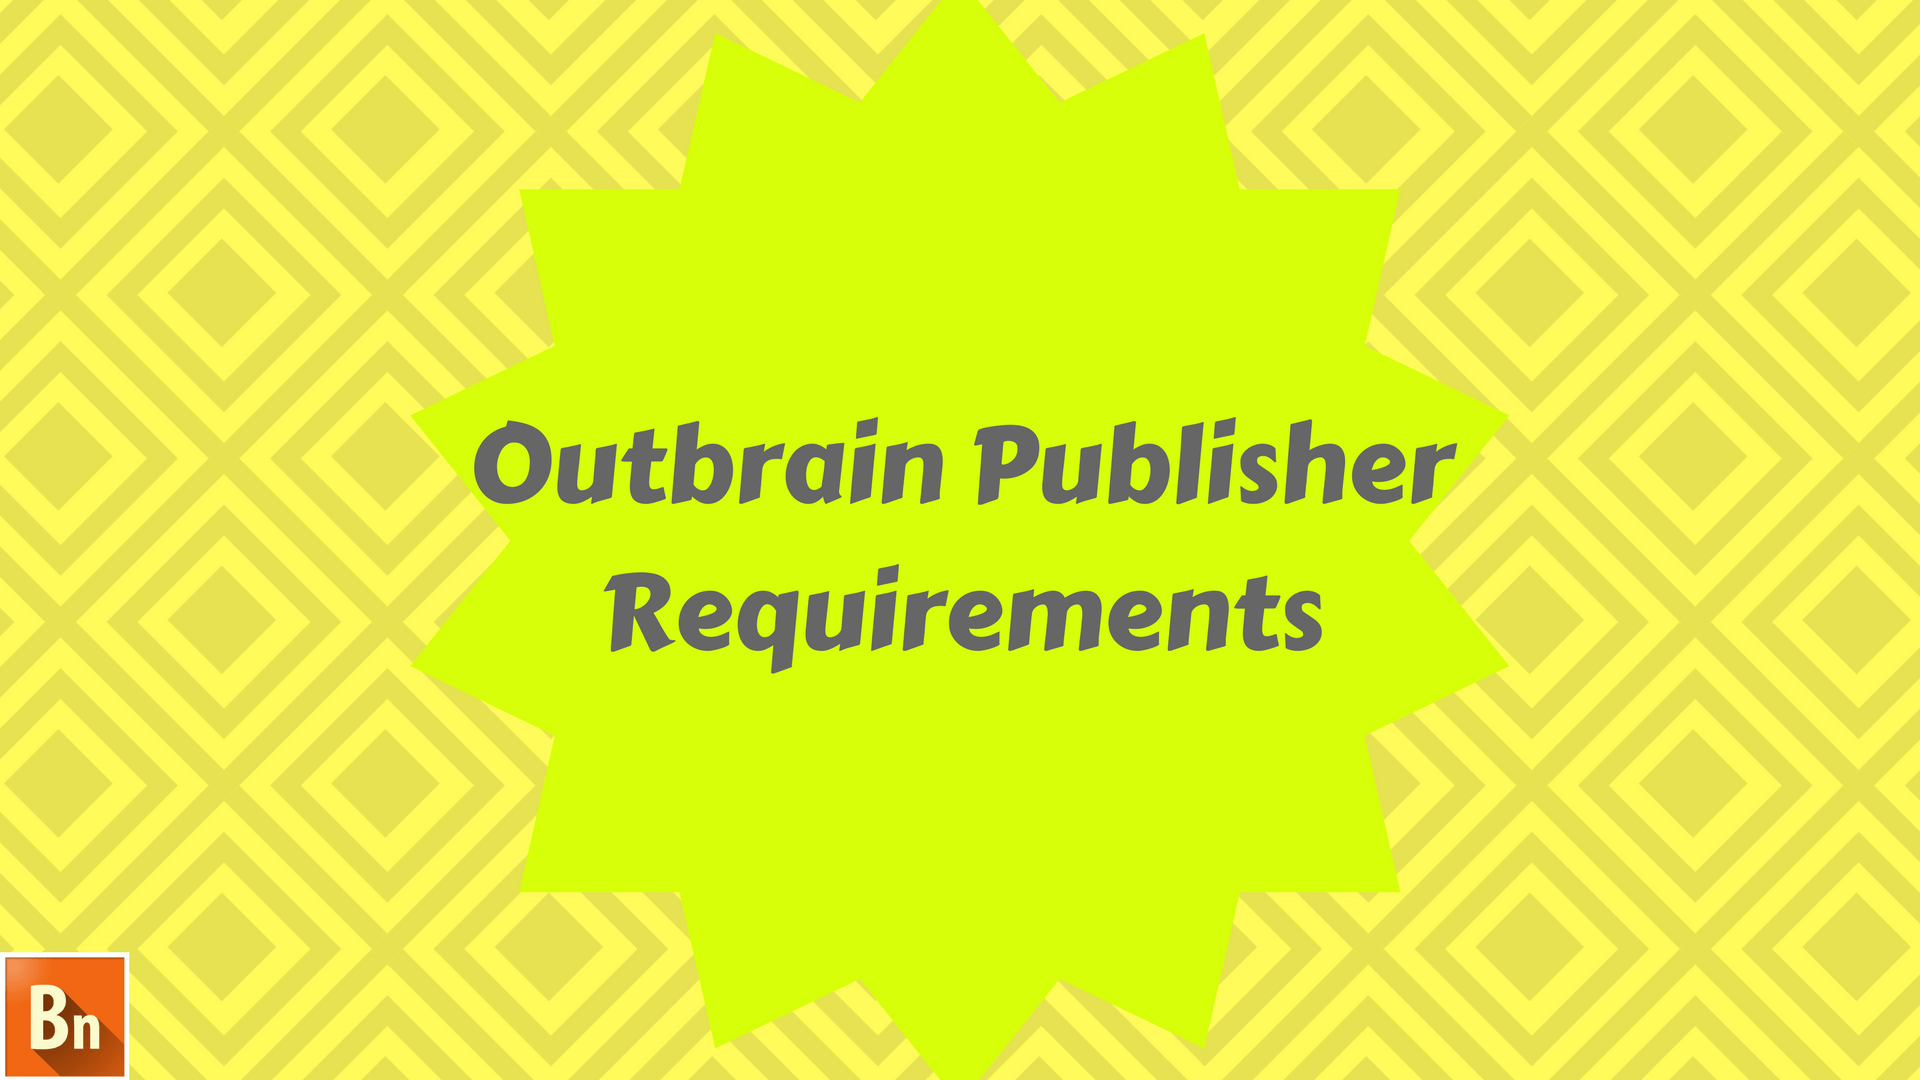 Outbrain Publisher Requirements